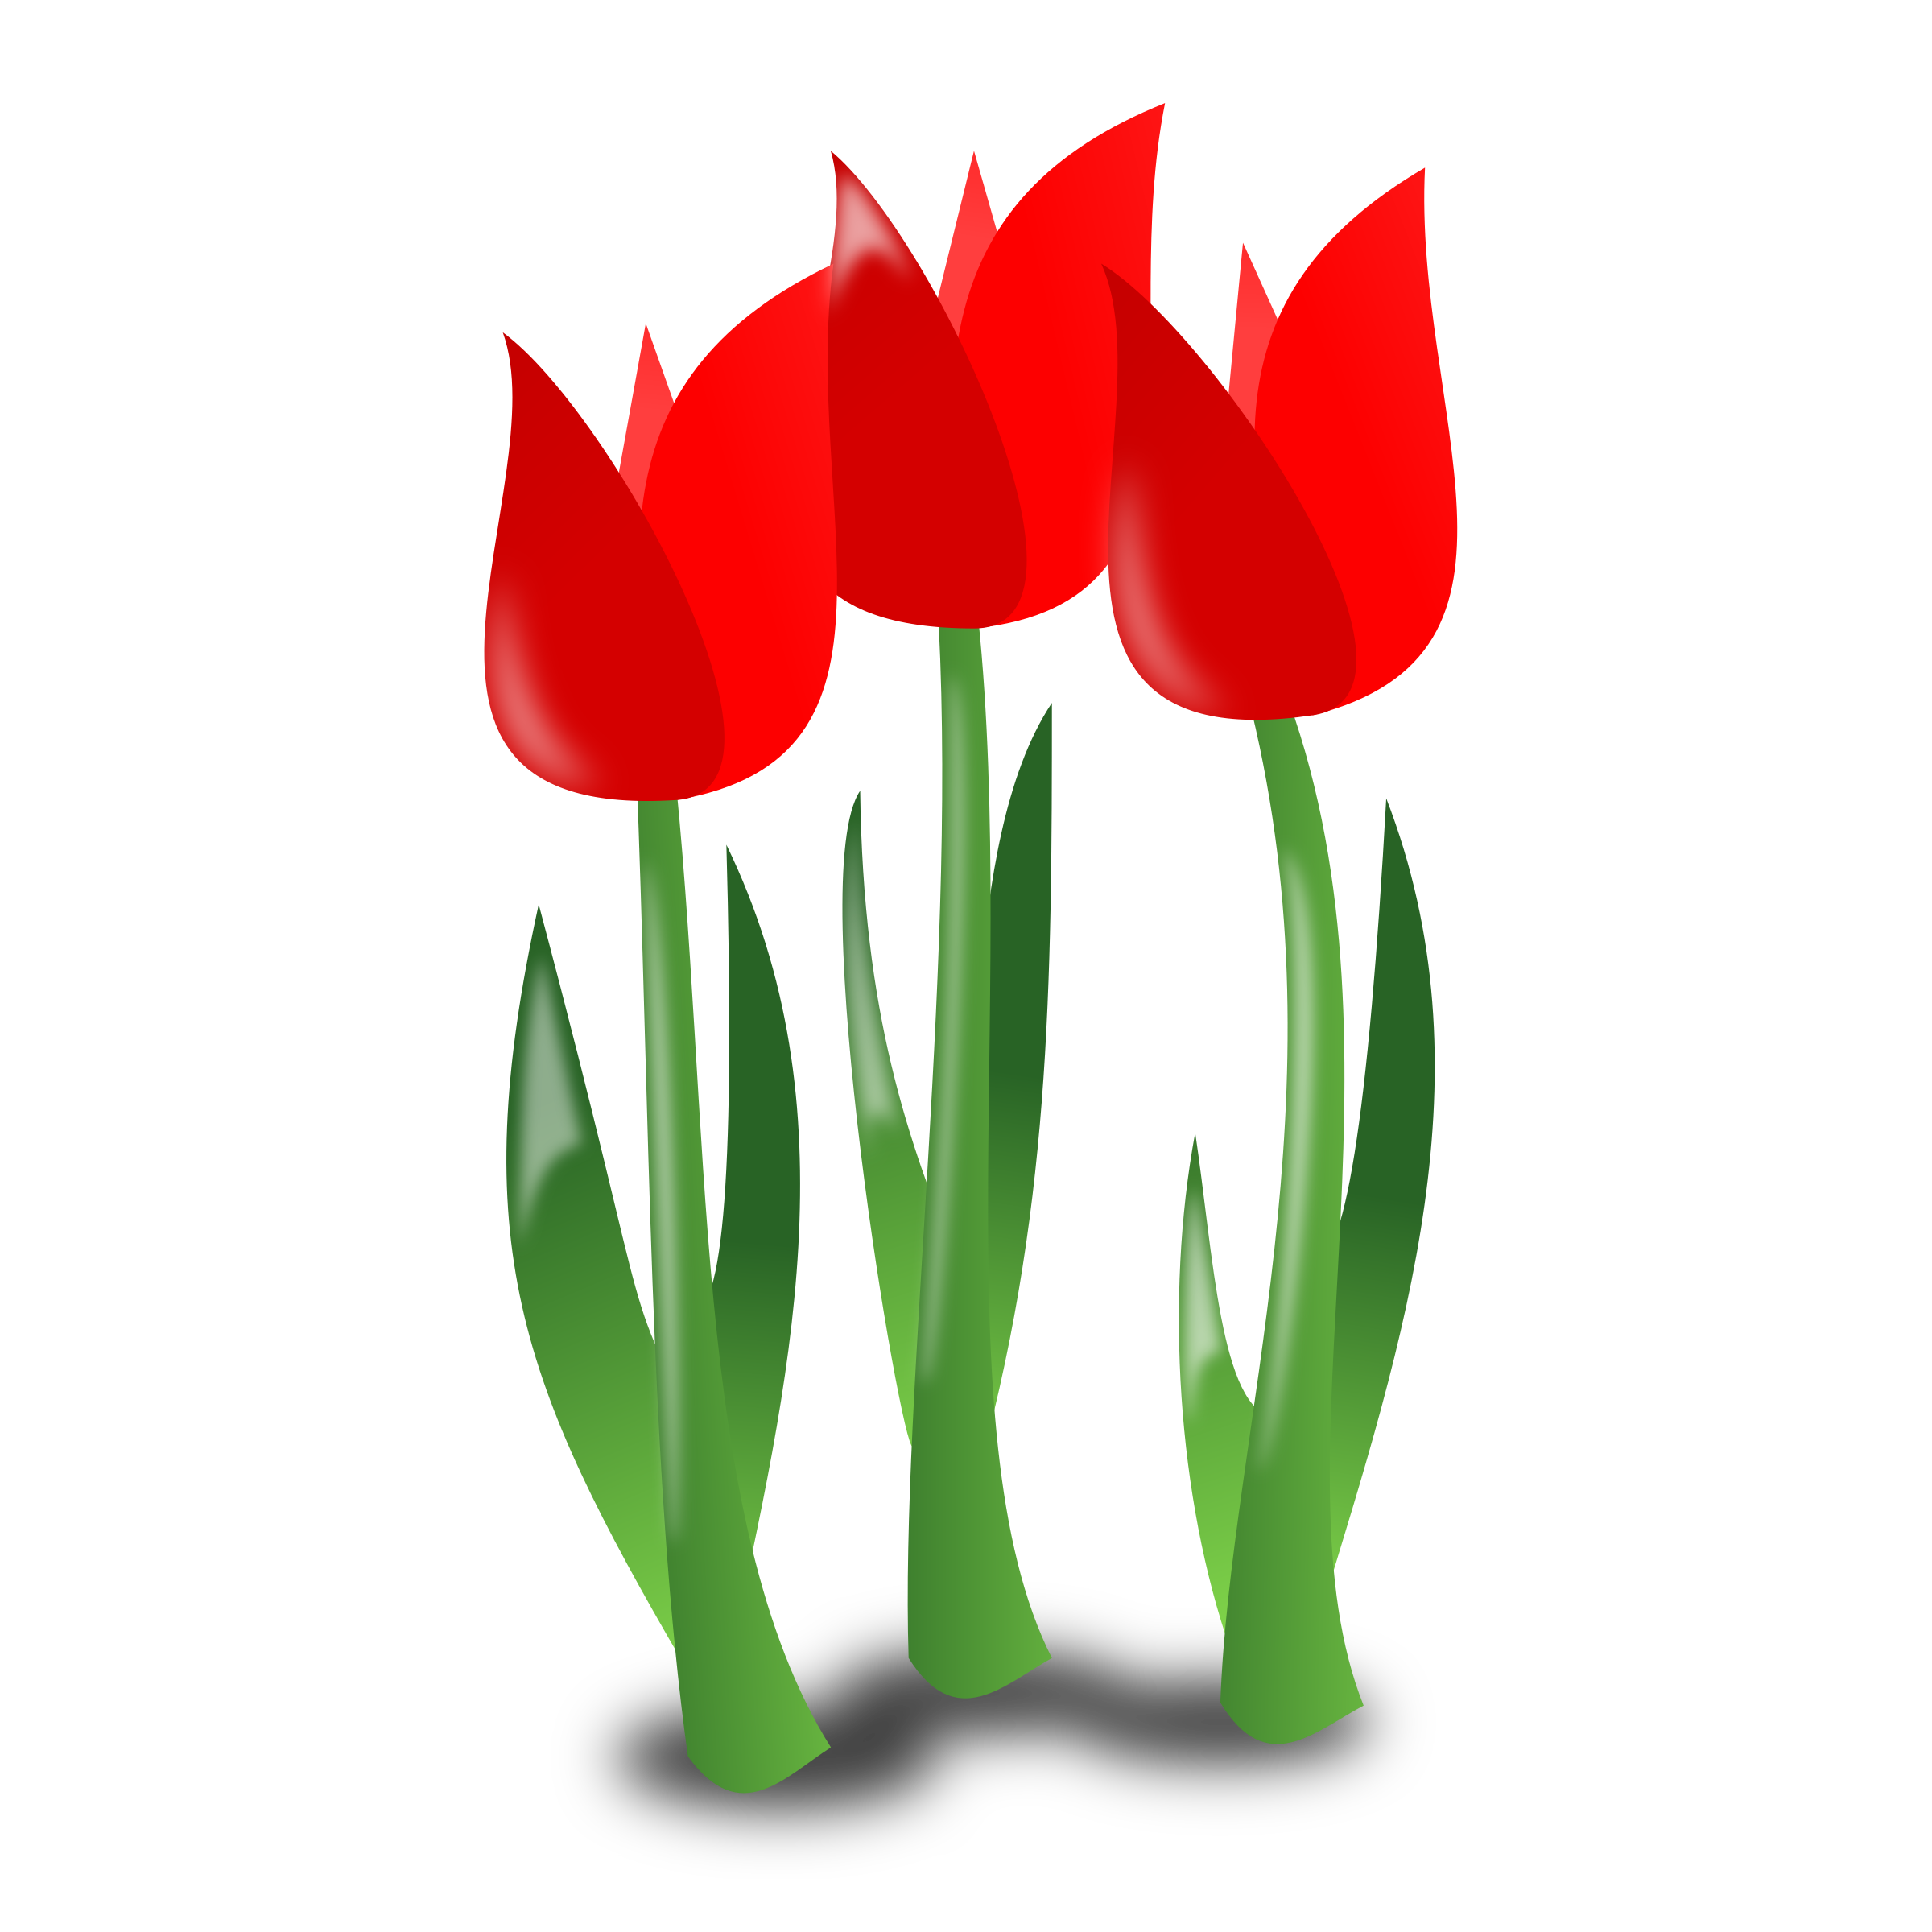 Red Flower clipart religious #8